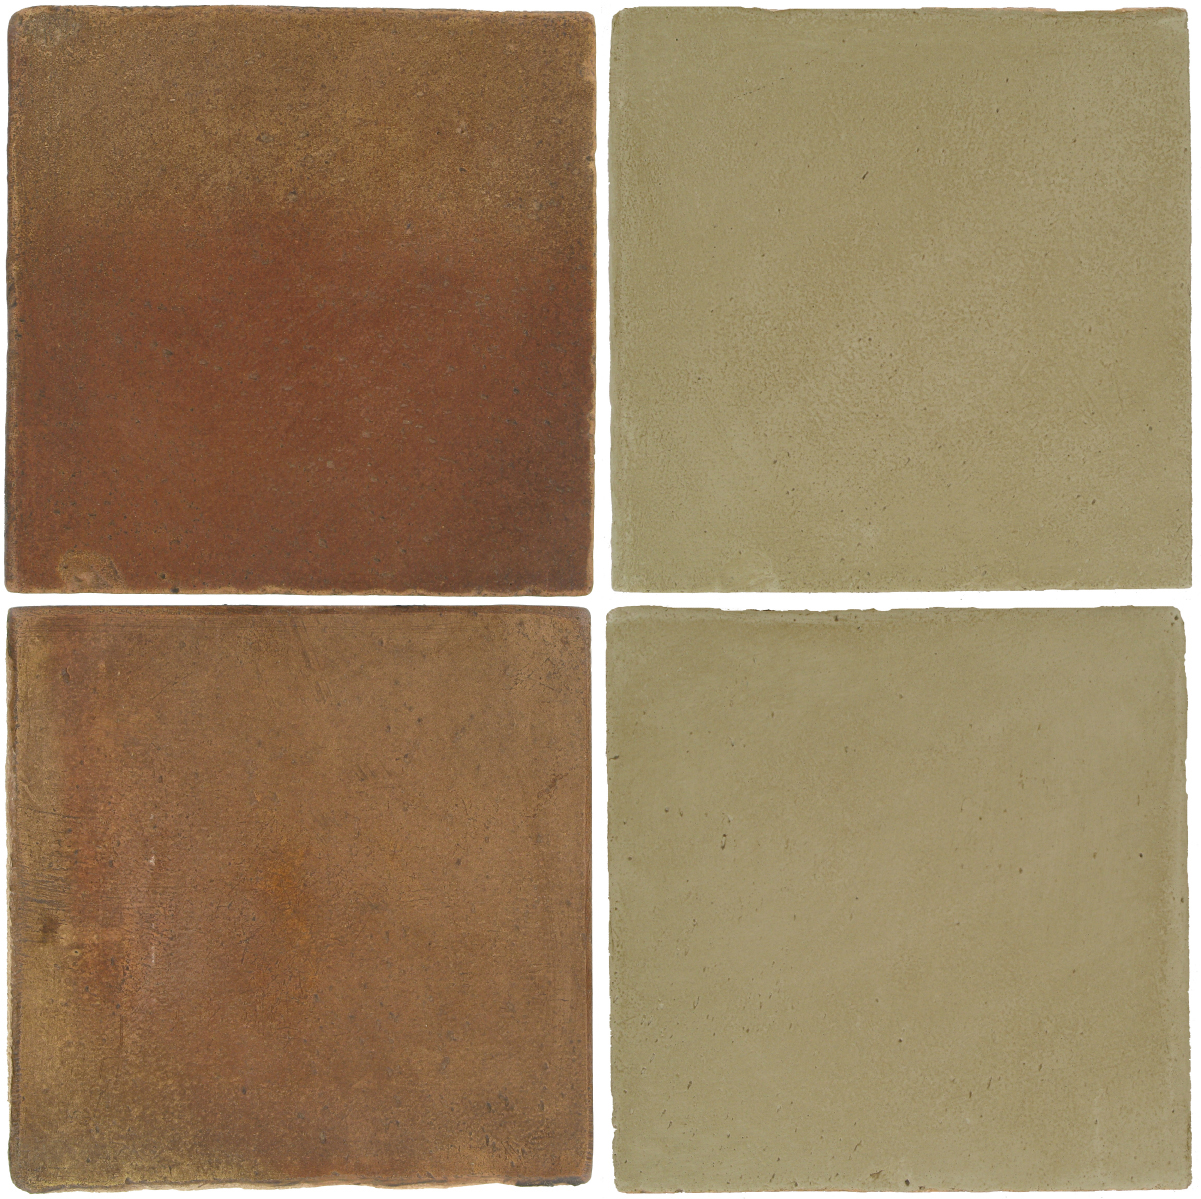 Pedralbes Antique Terracotta  2 Color Combinations  OHS-PSCM Camel Brown + OHS-PGDW Dirty W.